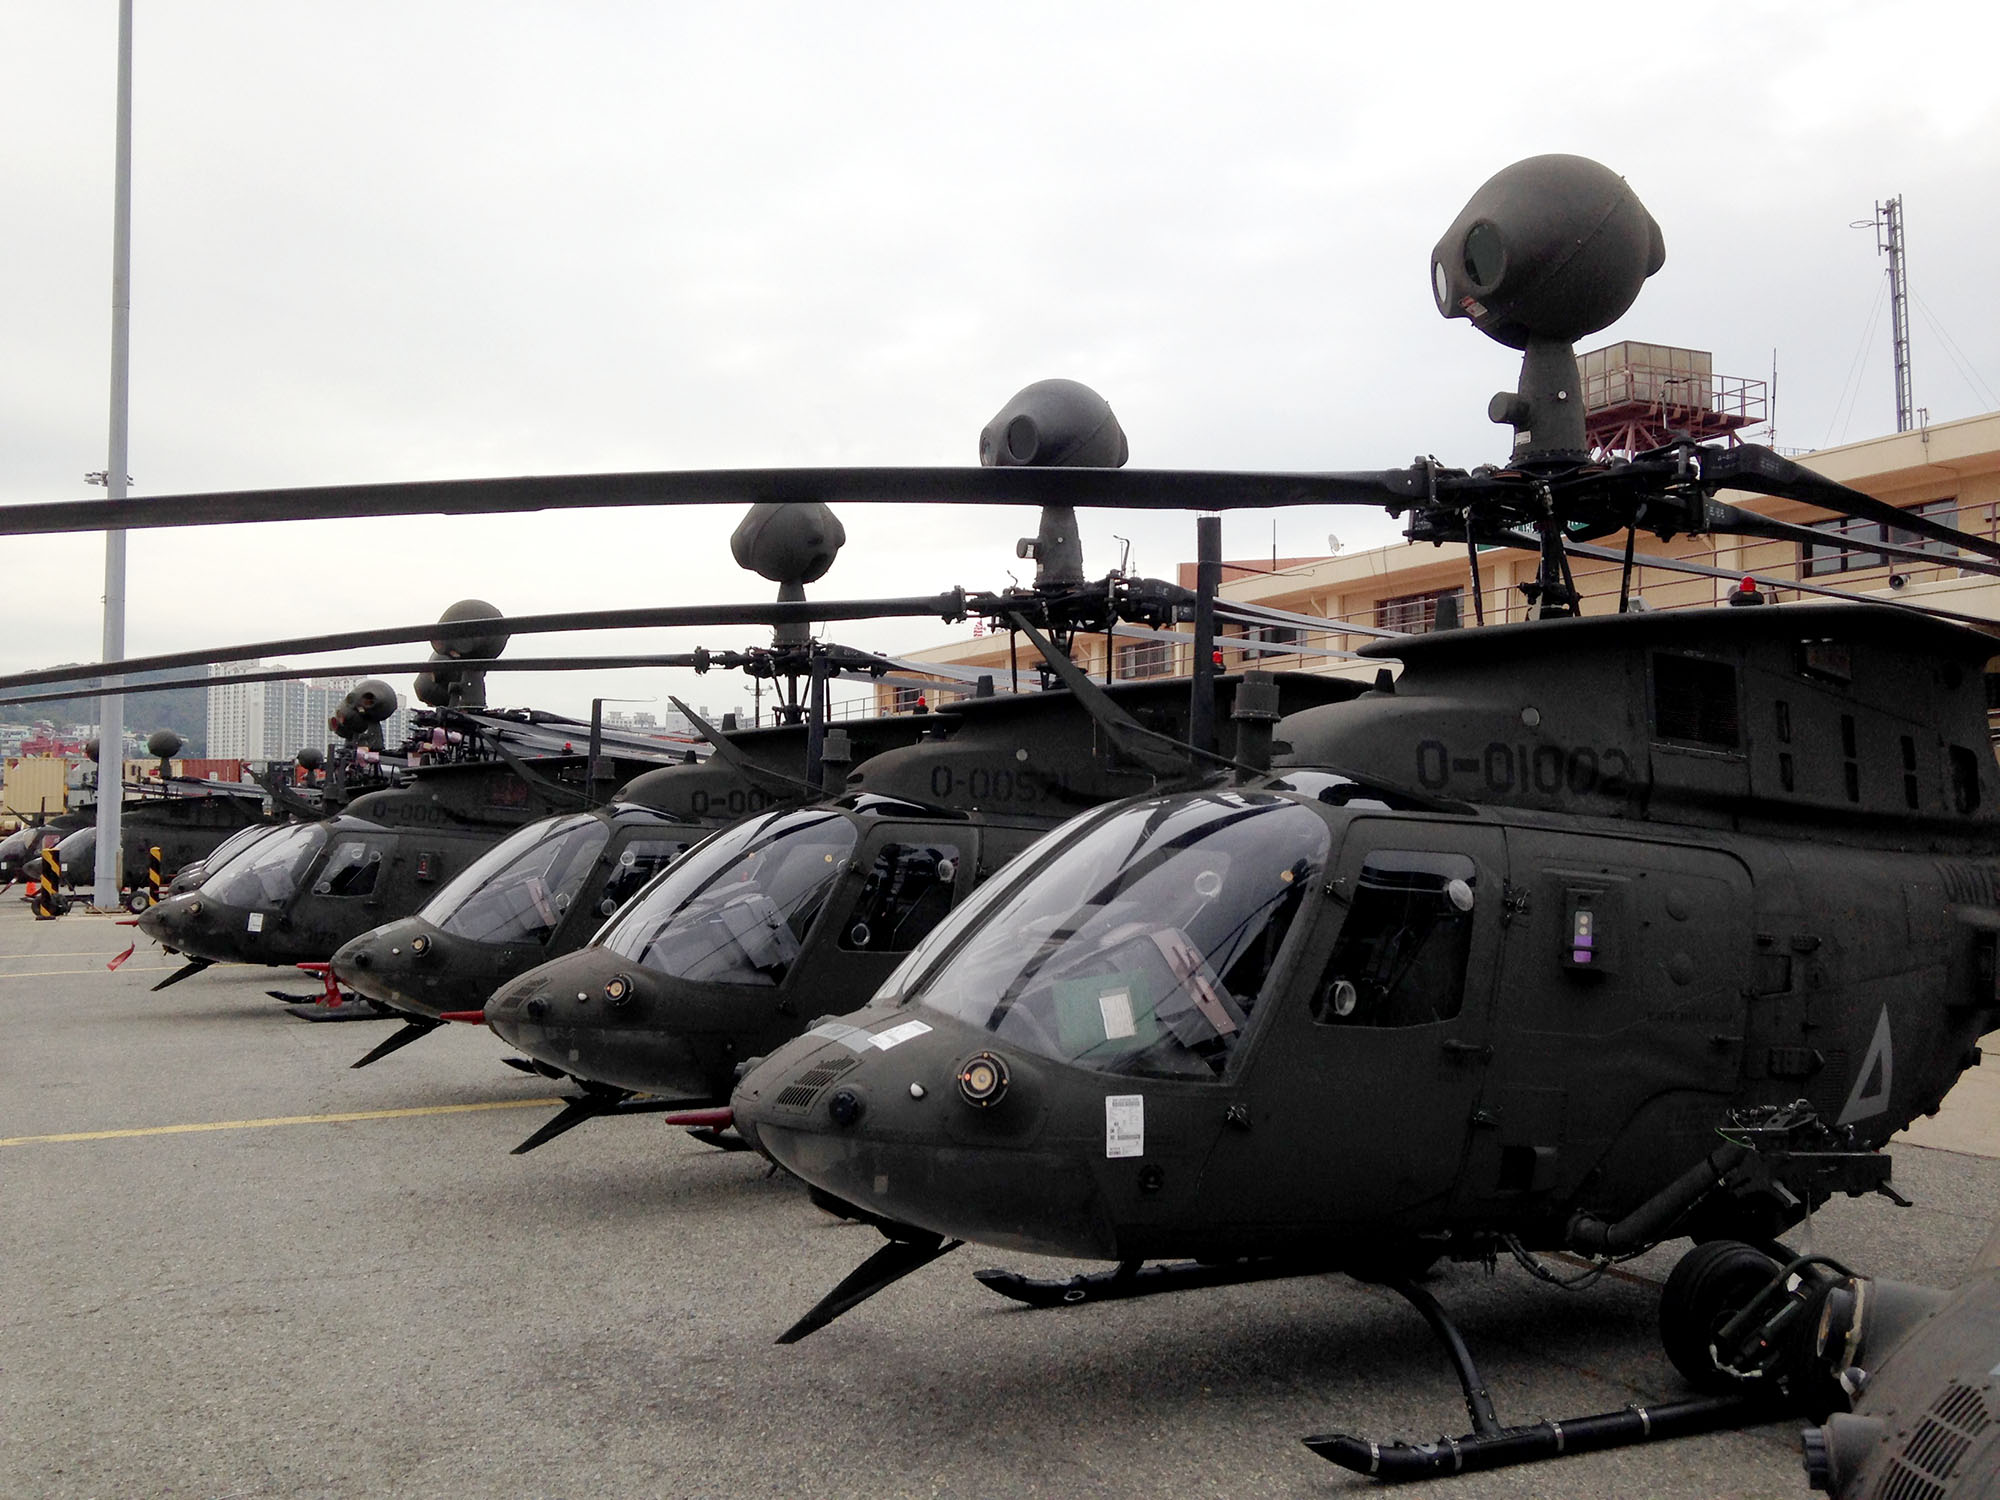 OH-58D Kiowa Warrior helicopters discharged from the Ocean Giant are staged at Pier 8